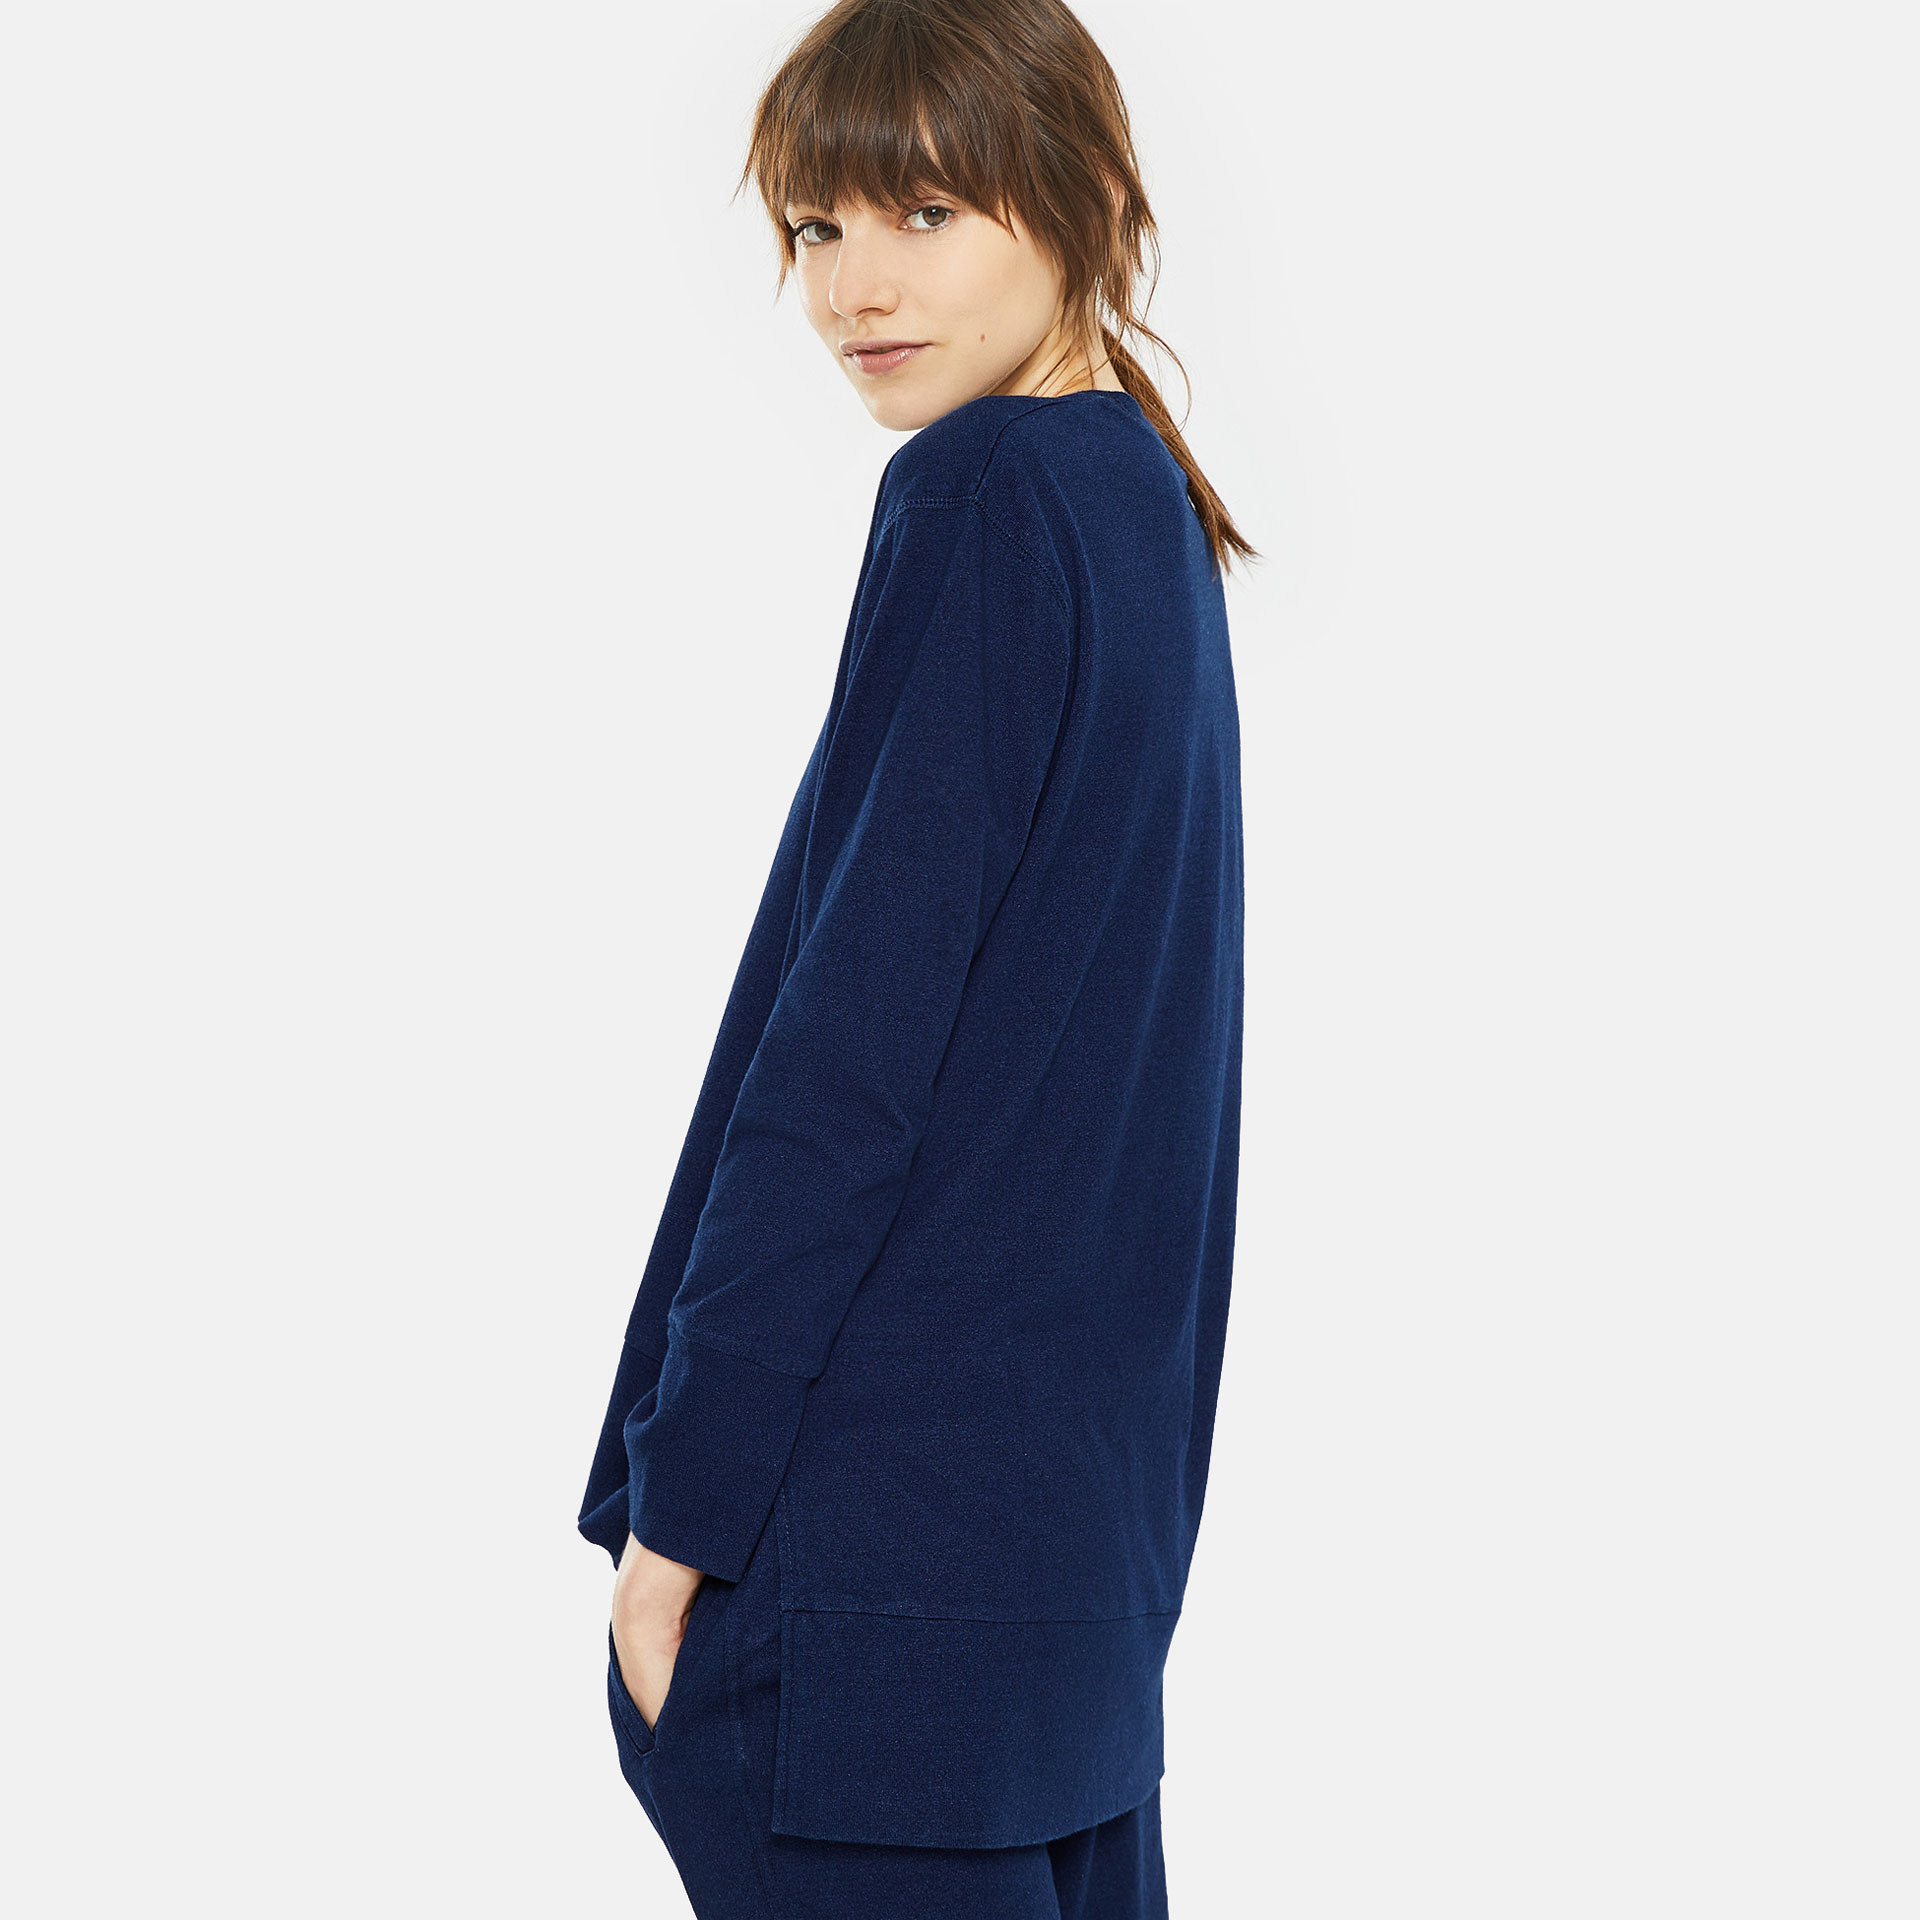 NAVY BLUE COTTON SWEATSHIRT